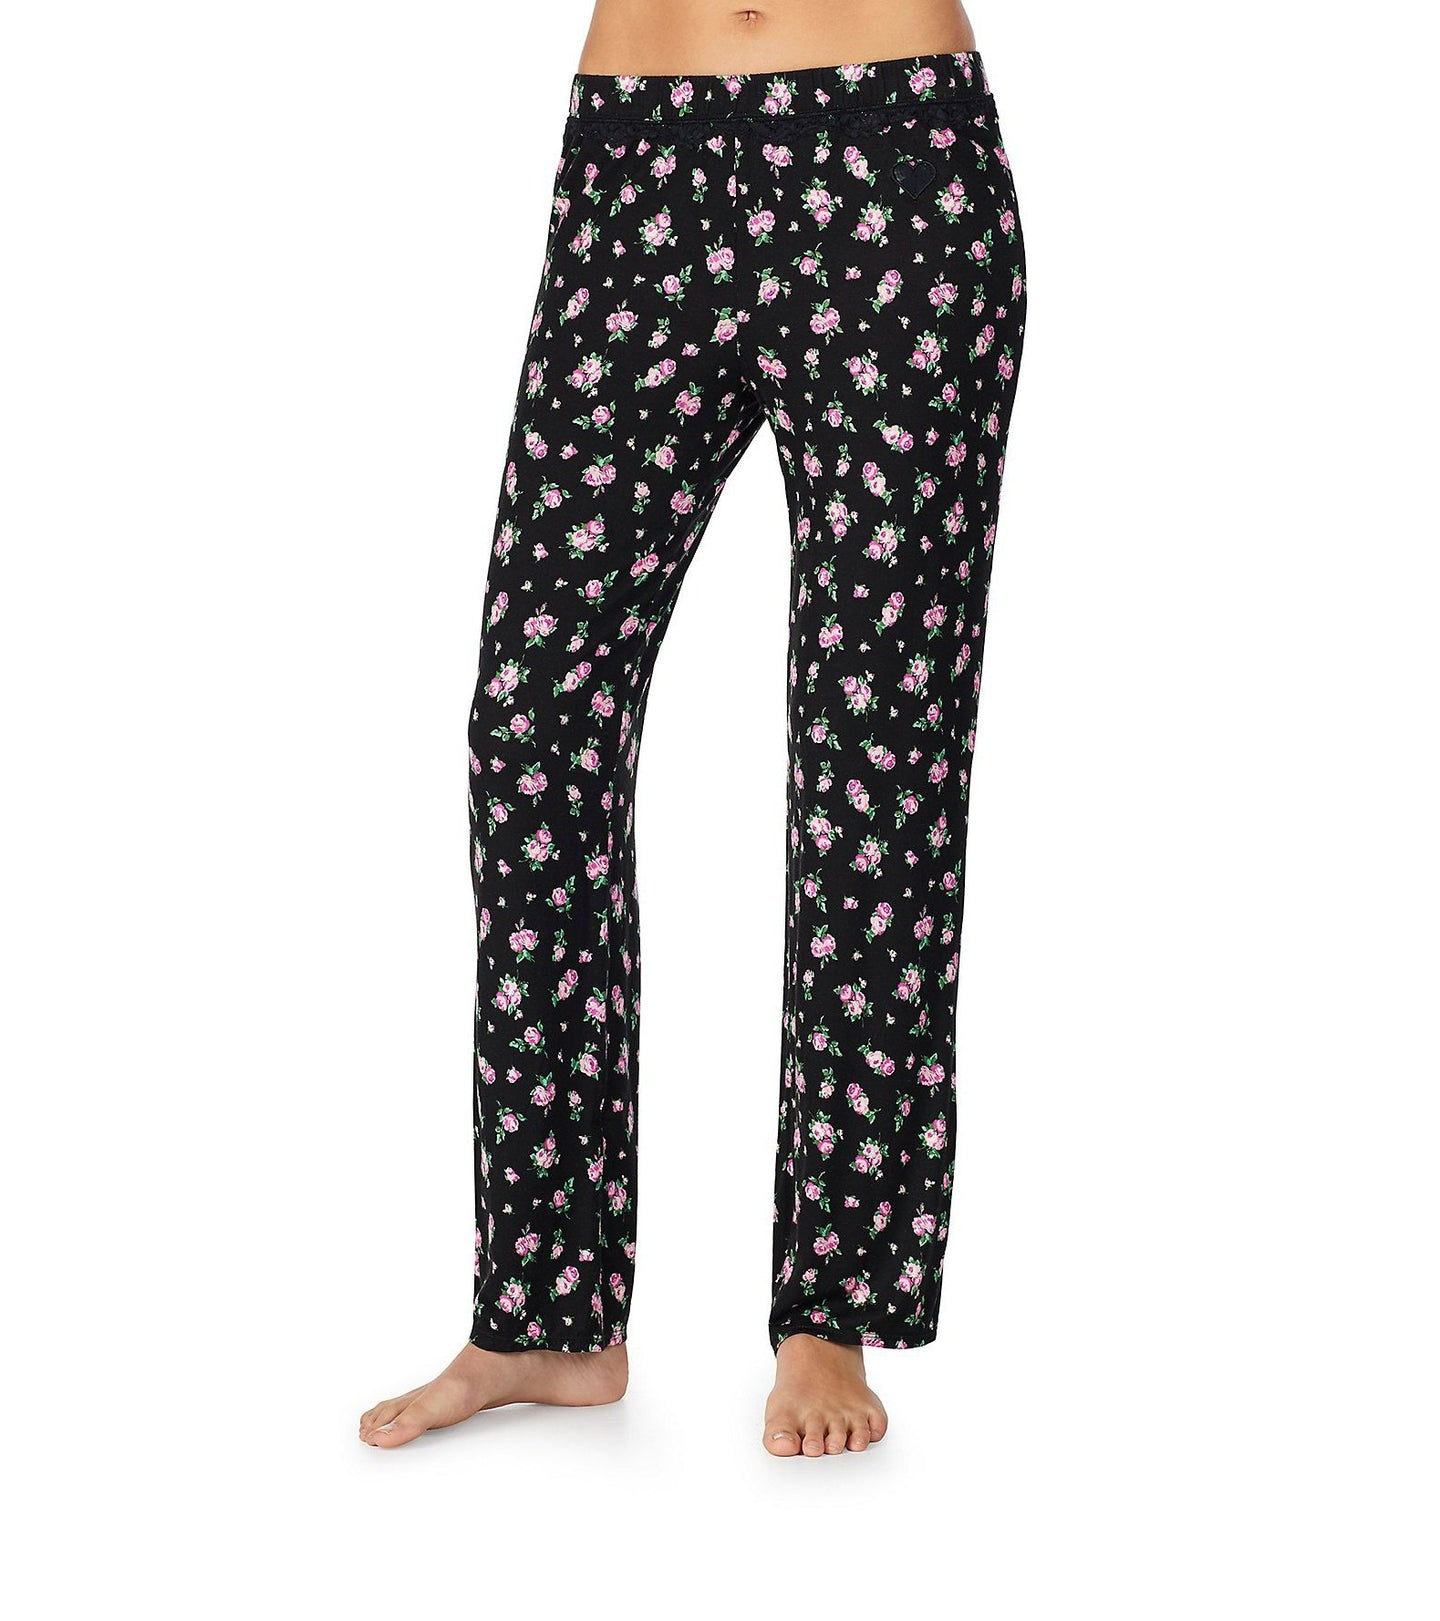 BETSEYS BEST RAYON KNIT PANT FLORAL - APPAREL - Betsey Johnson